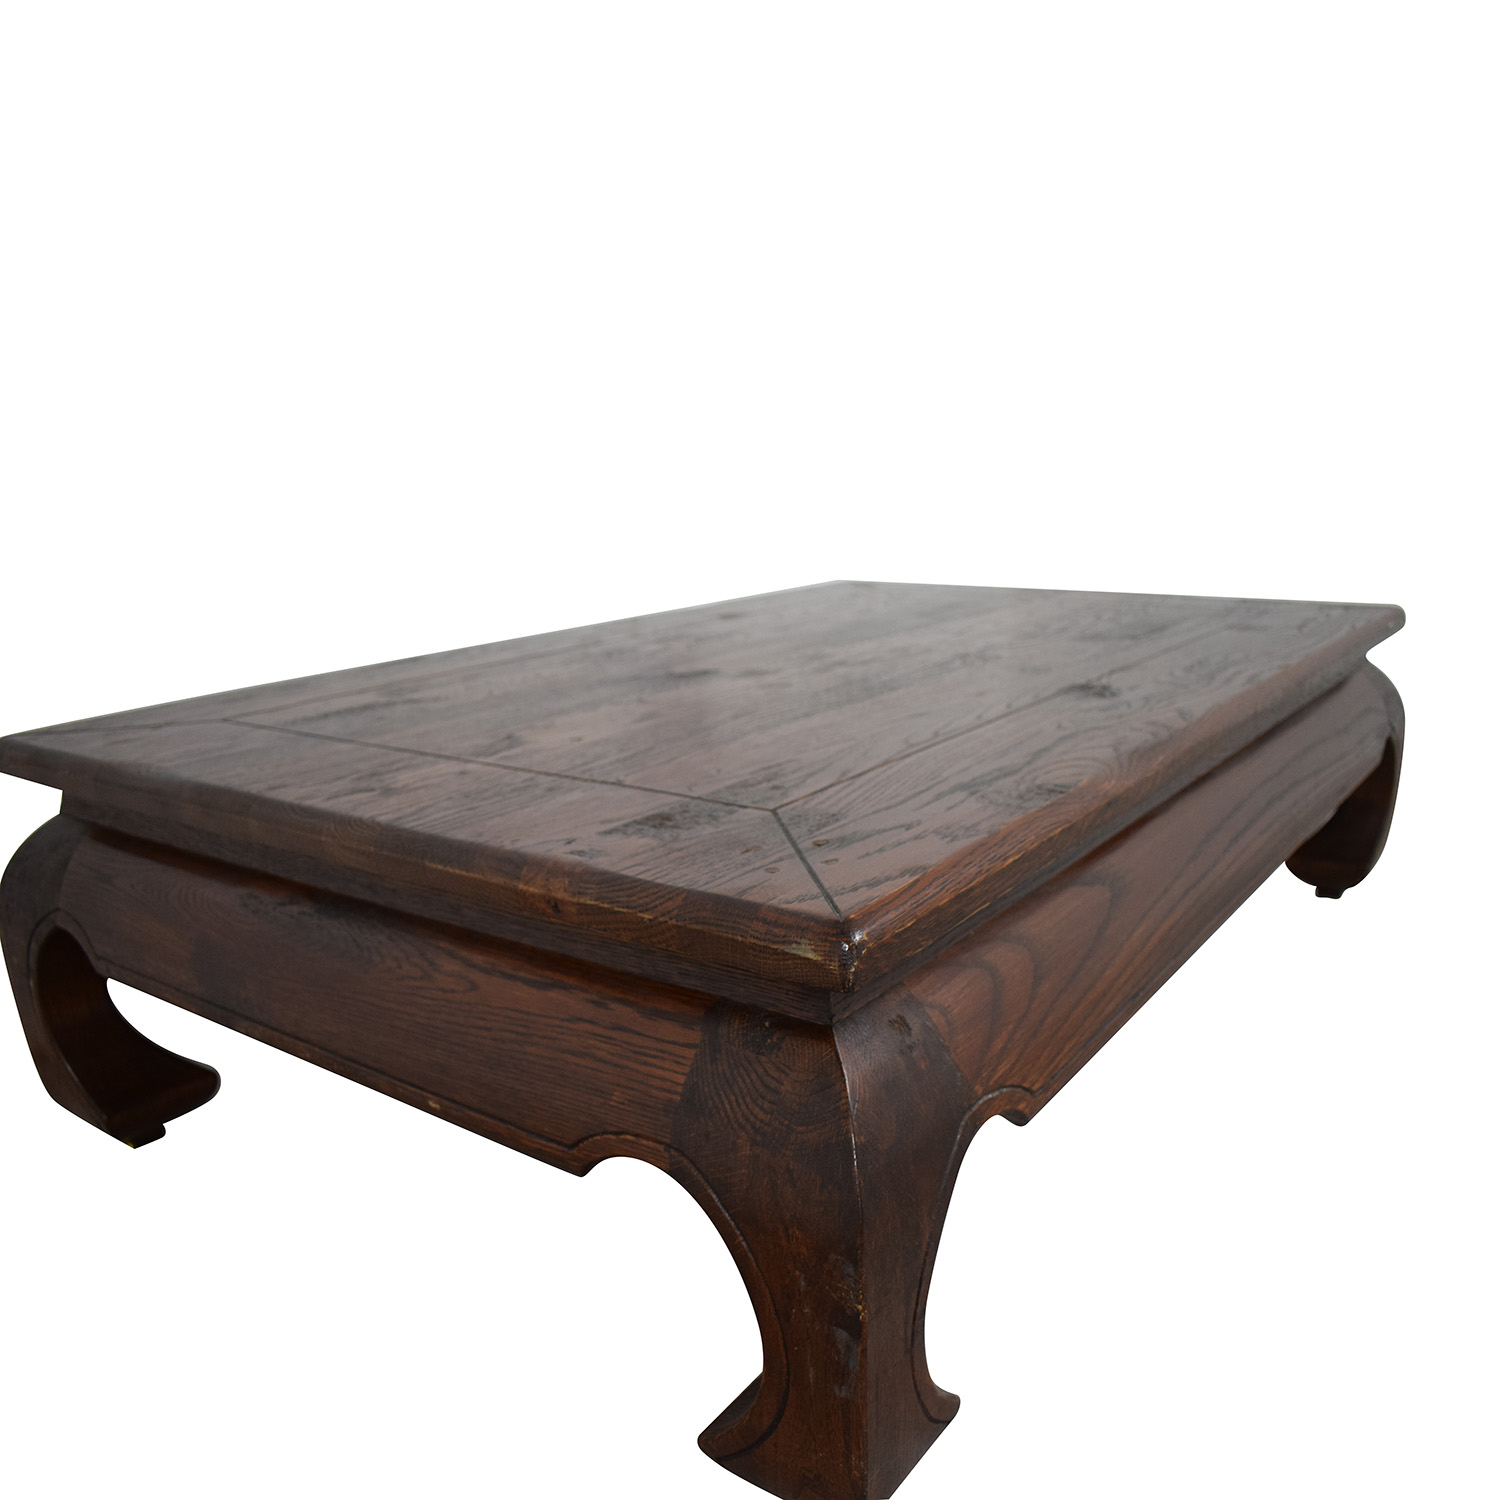 Arhaus Arhaus Coffee Table nyc